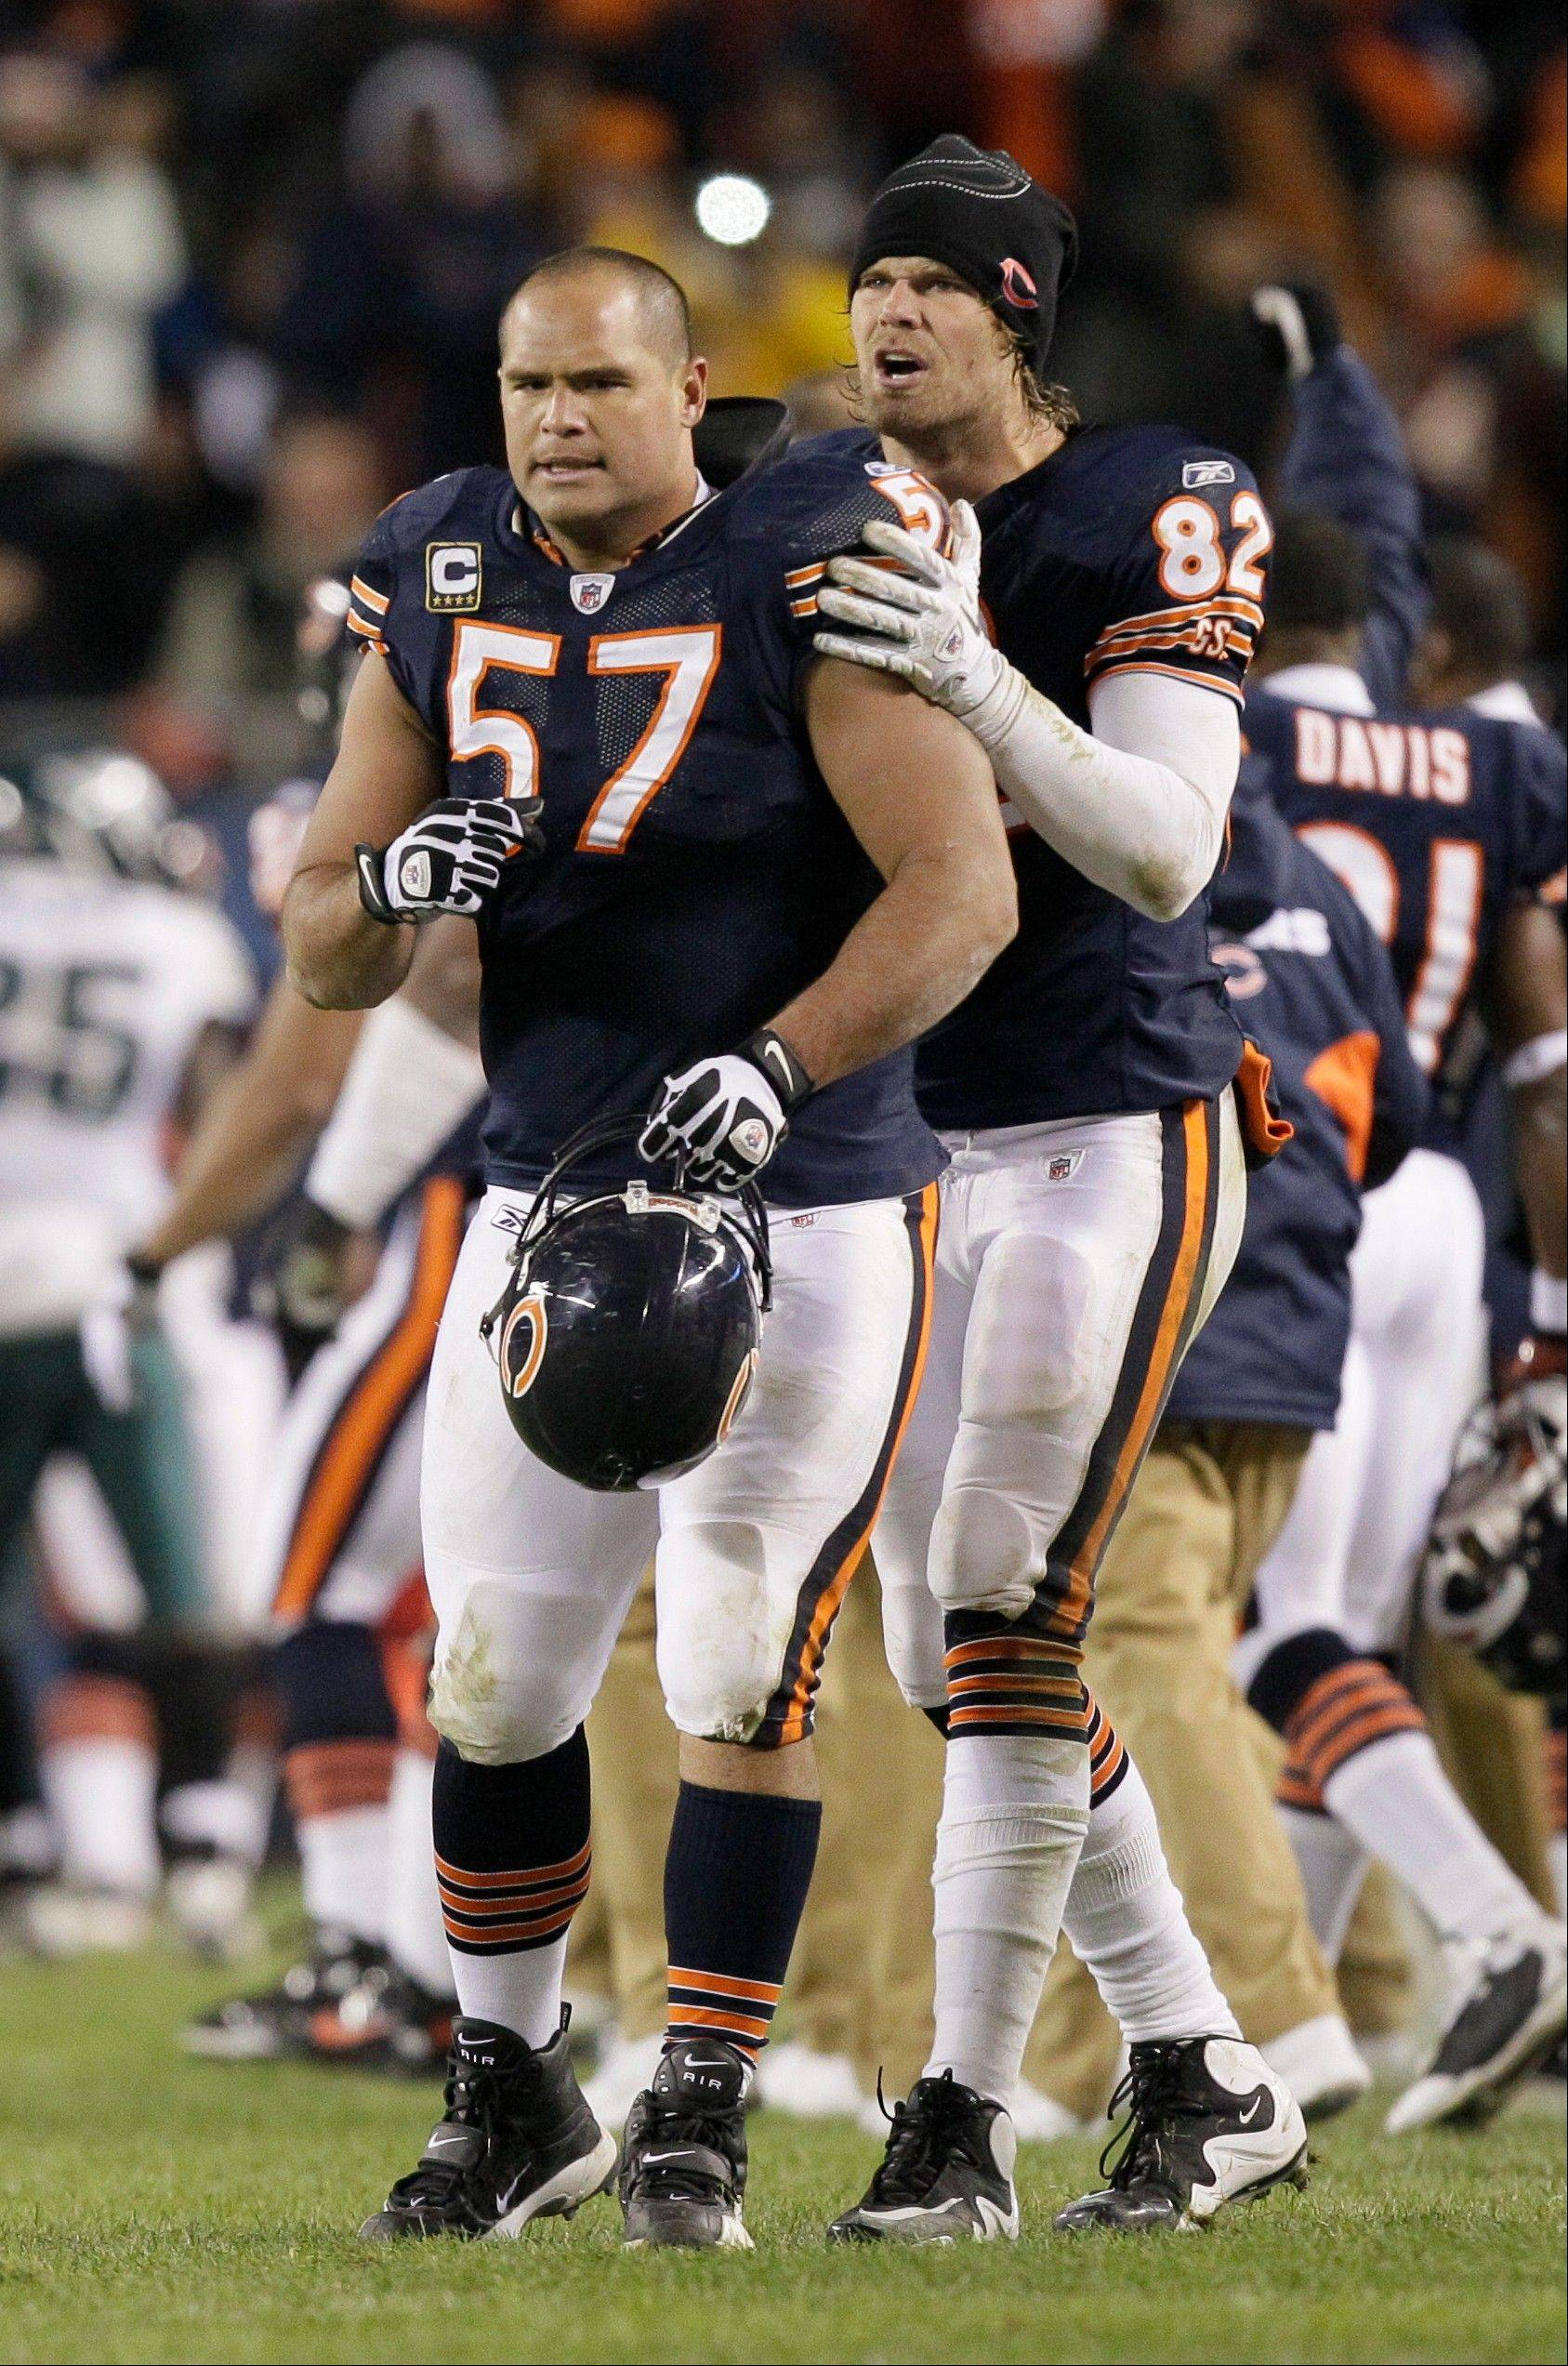 Chicago Bears center Olin Kreutz (57) and tight end Greg Olsen (82) react on the sideline in the second half of an NFL football game against Philadelphia Eagles in Chicago, Sunday, Nov. 28, 2010. (AP Photo/Nam Y. Huh)